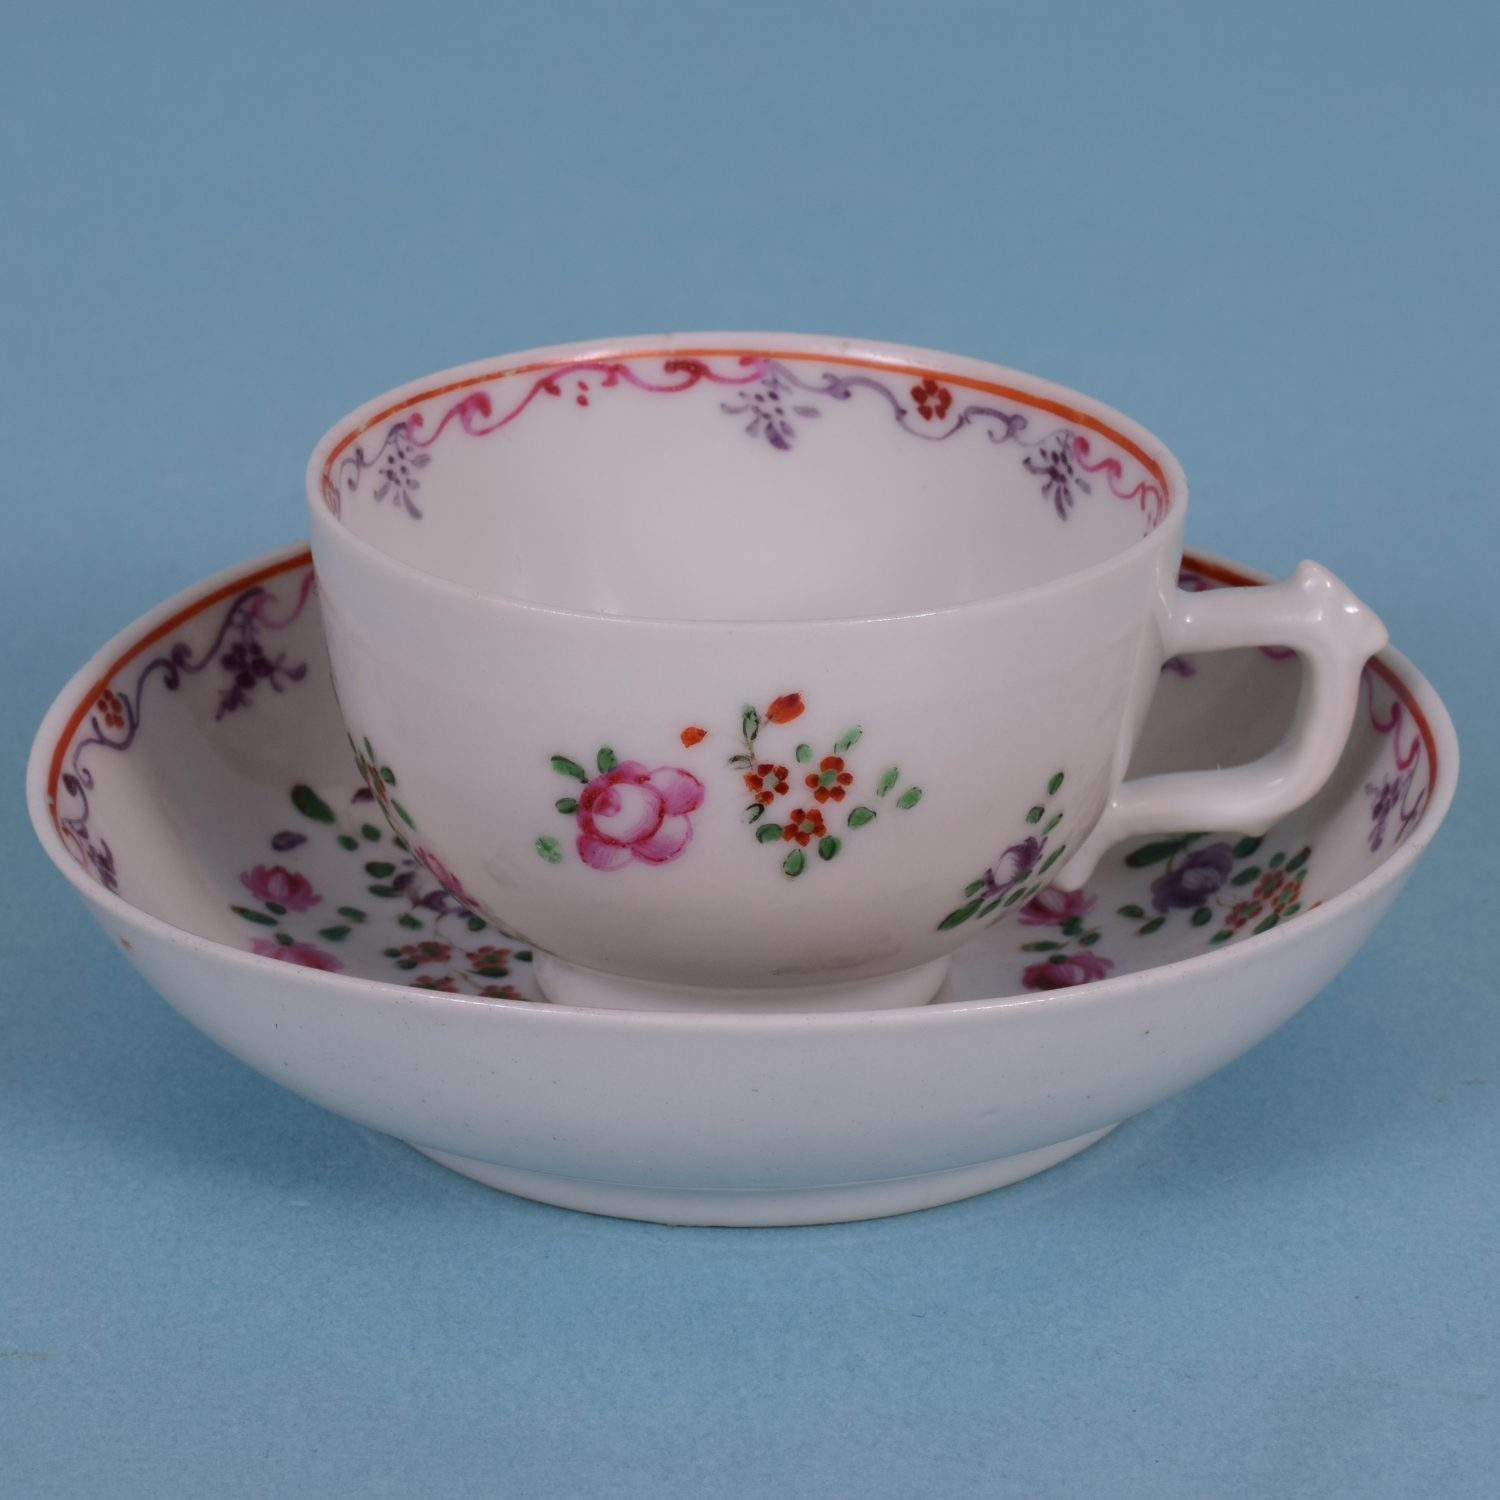 Chinese Export  Small Teacup & Saucer (a)